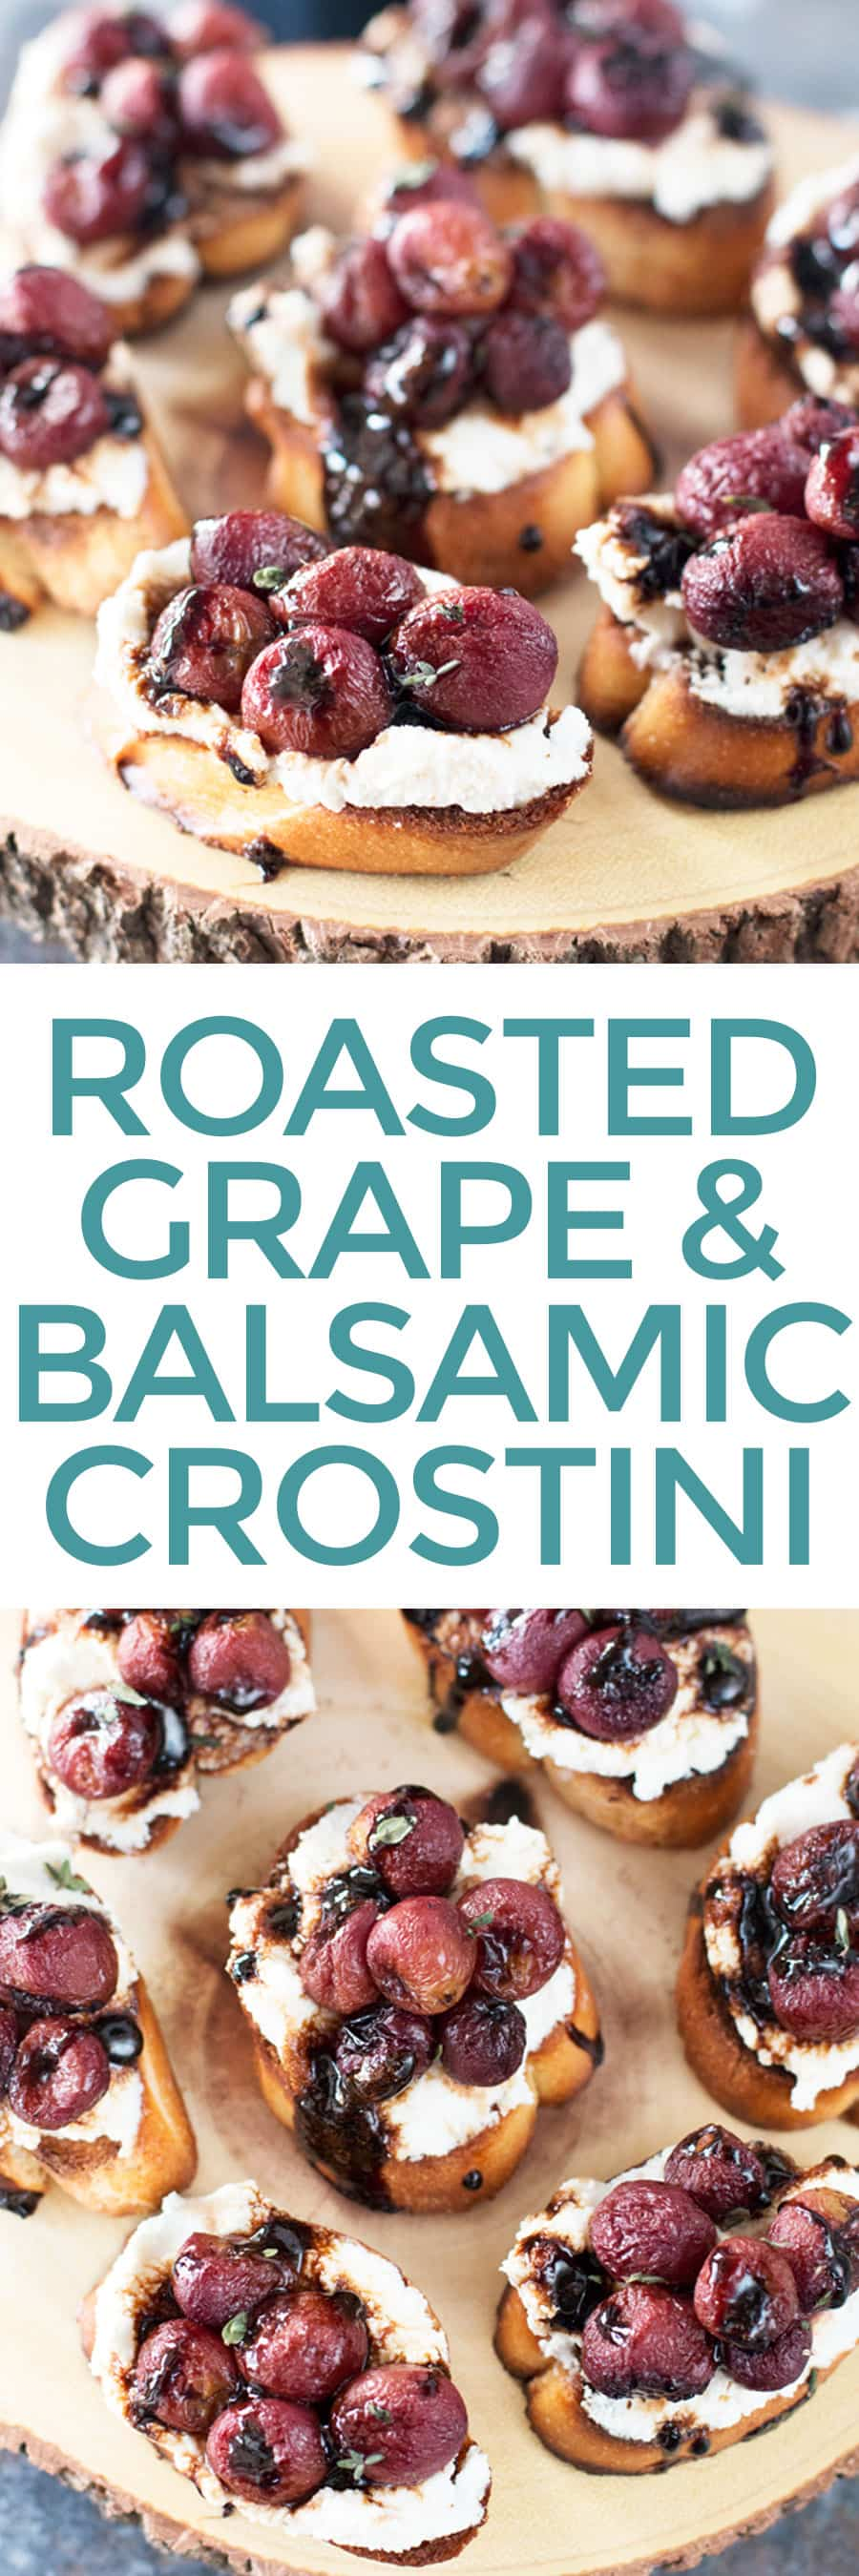 Roasted Grape and Balsamic Crostini | cakenknife.com